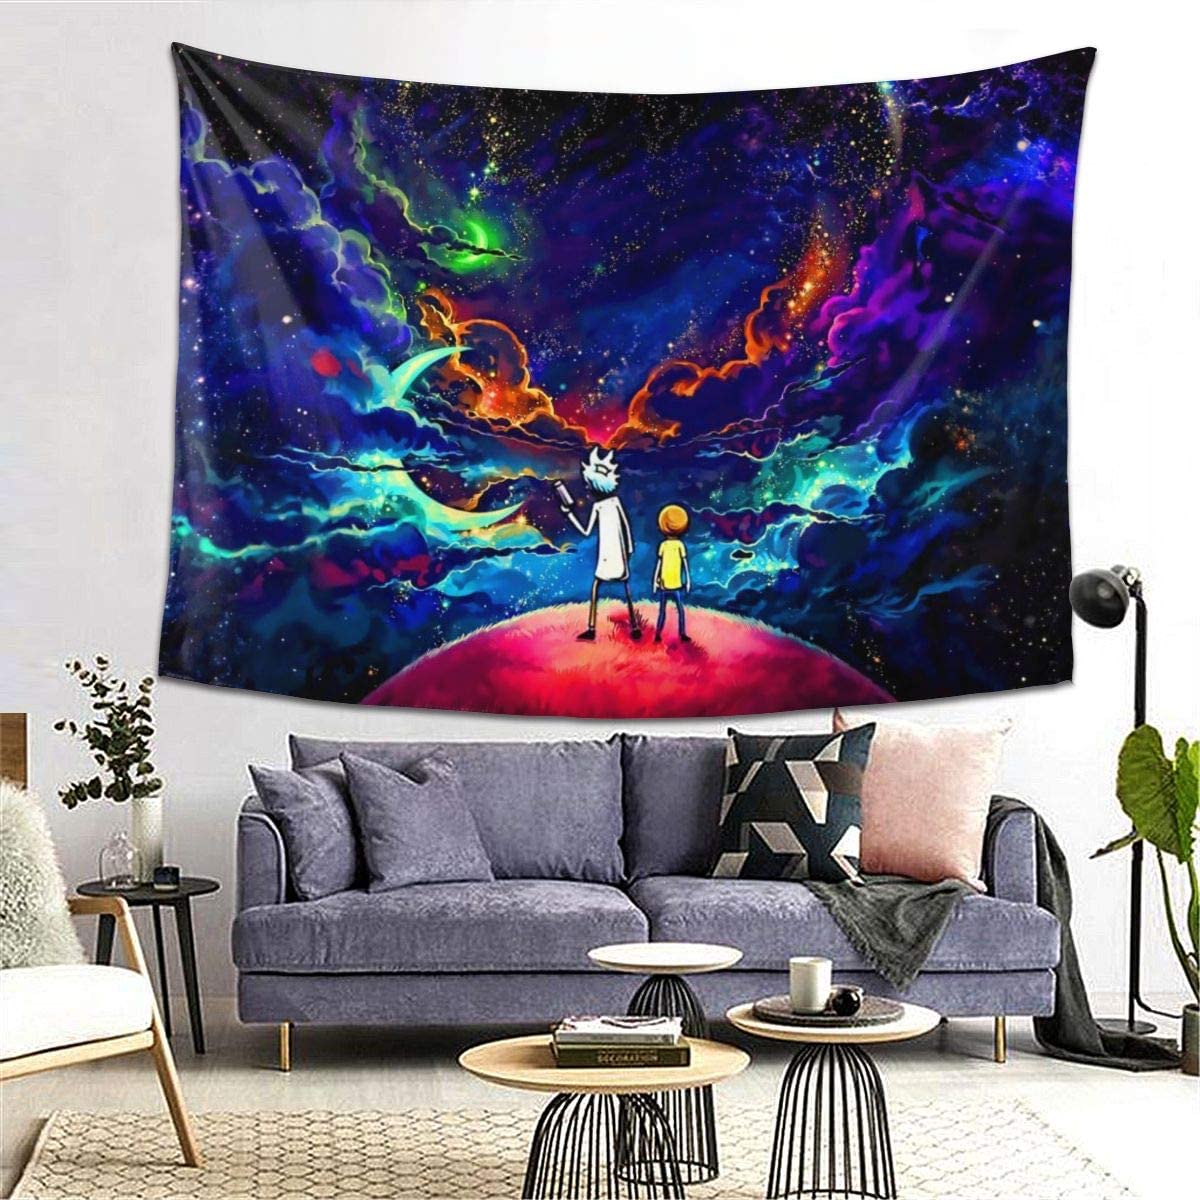 Starry Art Rick Mort Tapestry Wall Hanging Decoration for Home Bedroom Living Room Dorm Party 80×60 Inches